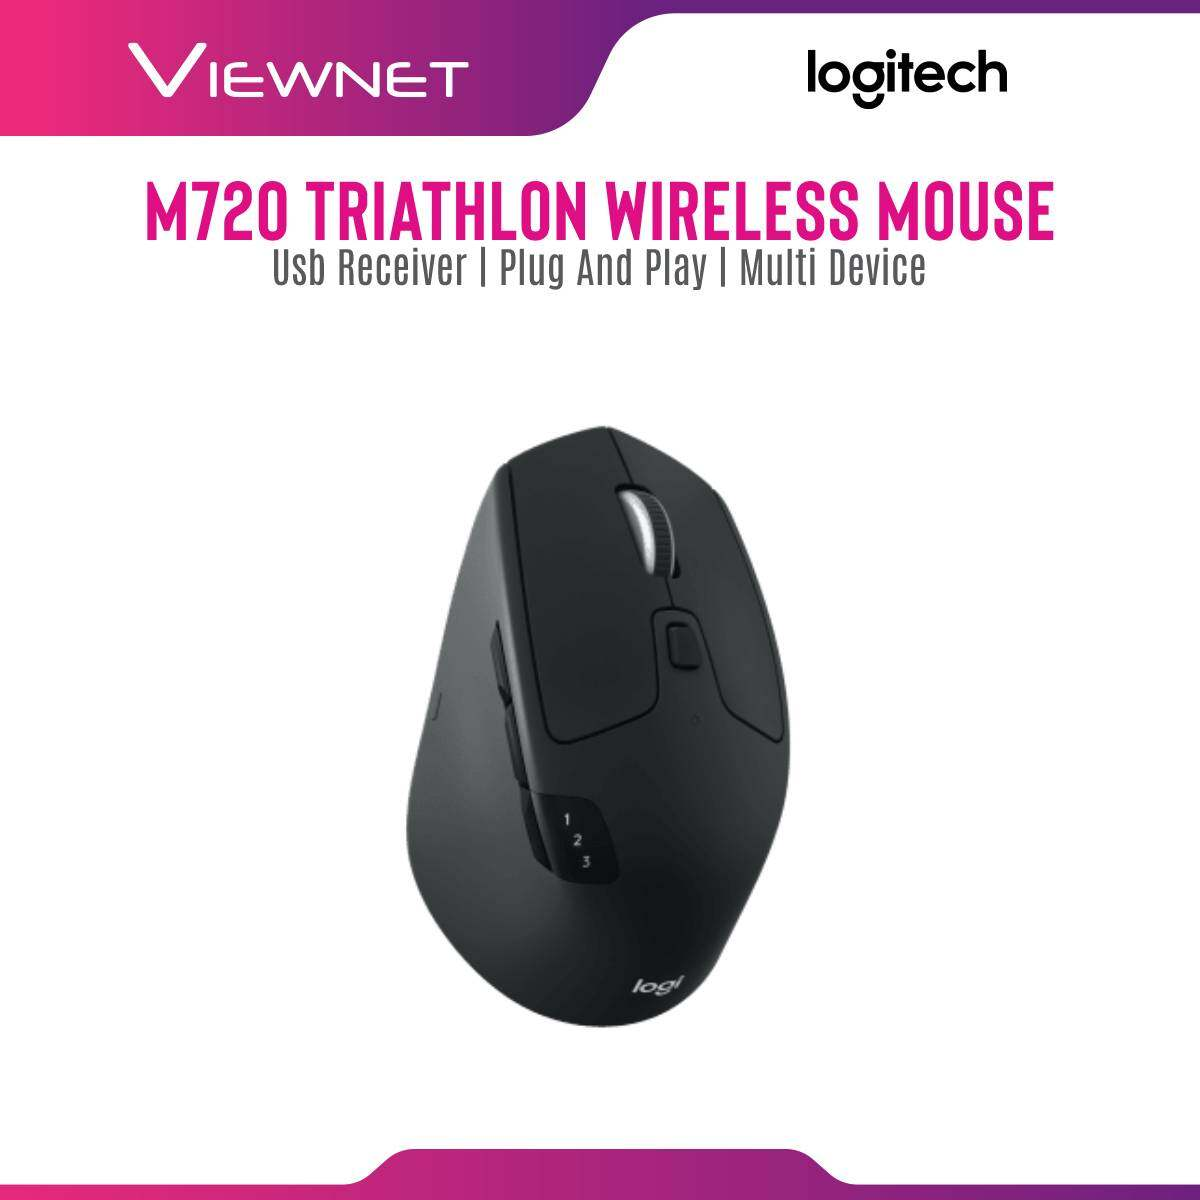 Logitech M720 Triathlon Wireless Mouse with Easy Switch Technology, Hyper Fast Scrolling, 24-Month Battery Life, Bluetooth Smart and 2.4 GHz Wireless Connection, Logitech Advanced Optical Tracking, Logitech Options and Logitech Flow Softeware Support